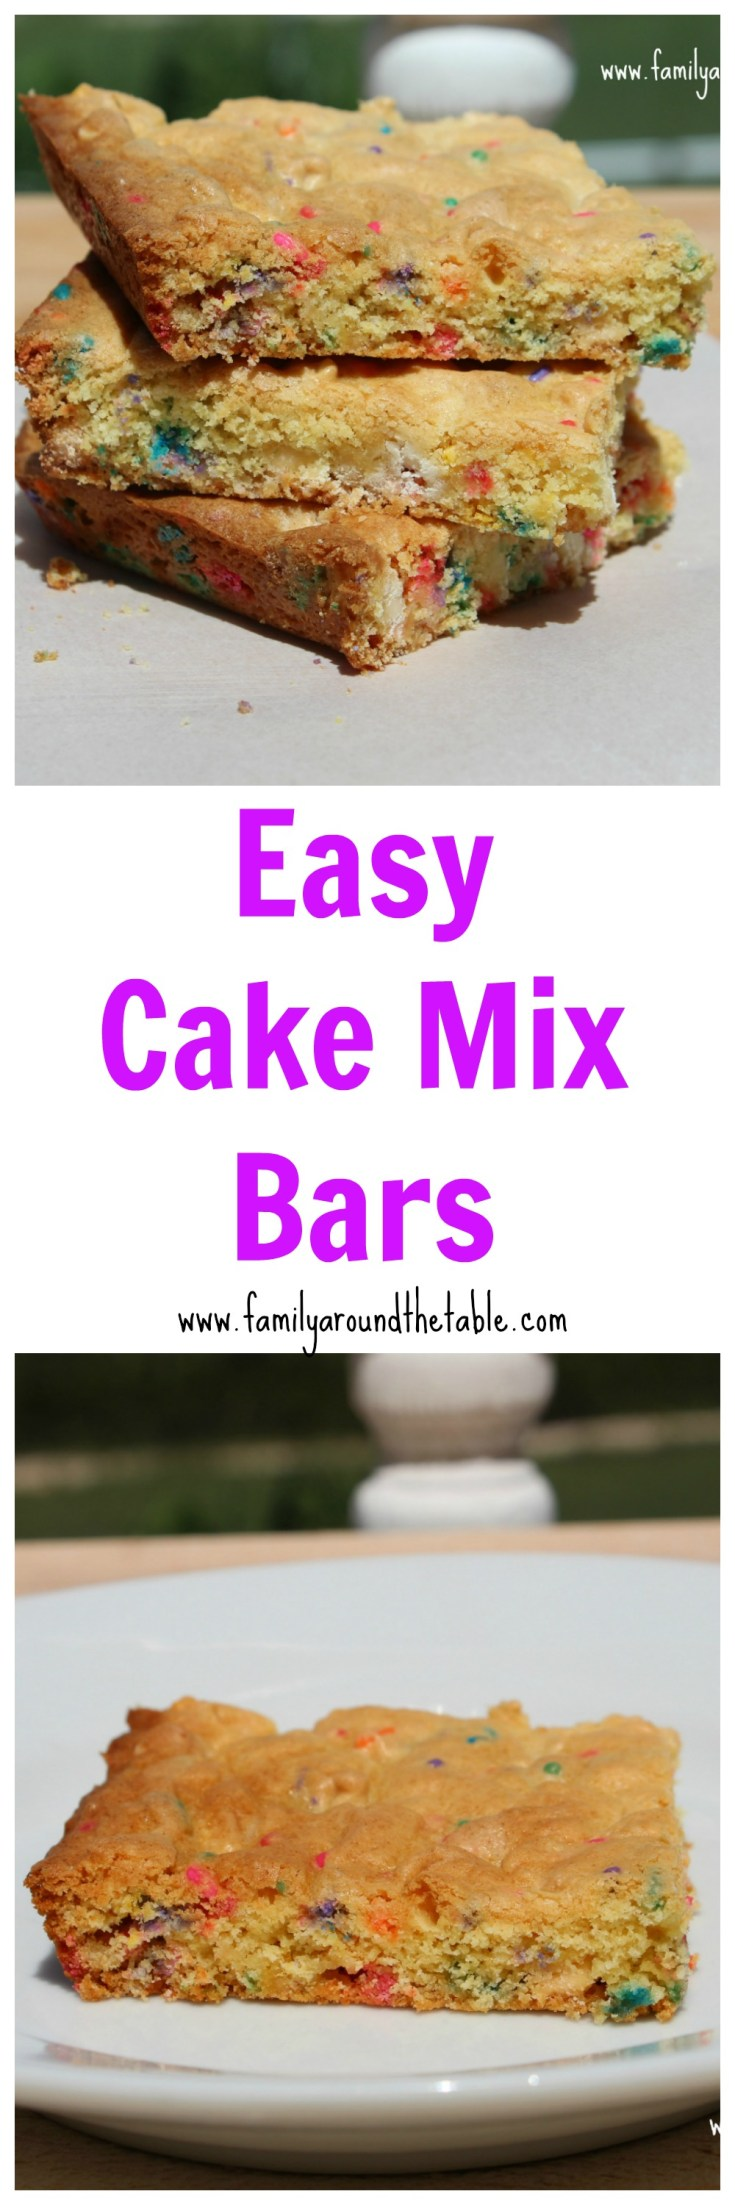 Easy cake mix bars are perfect after school treats. Great for potluck parties too!